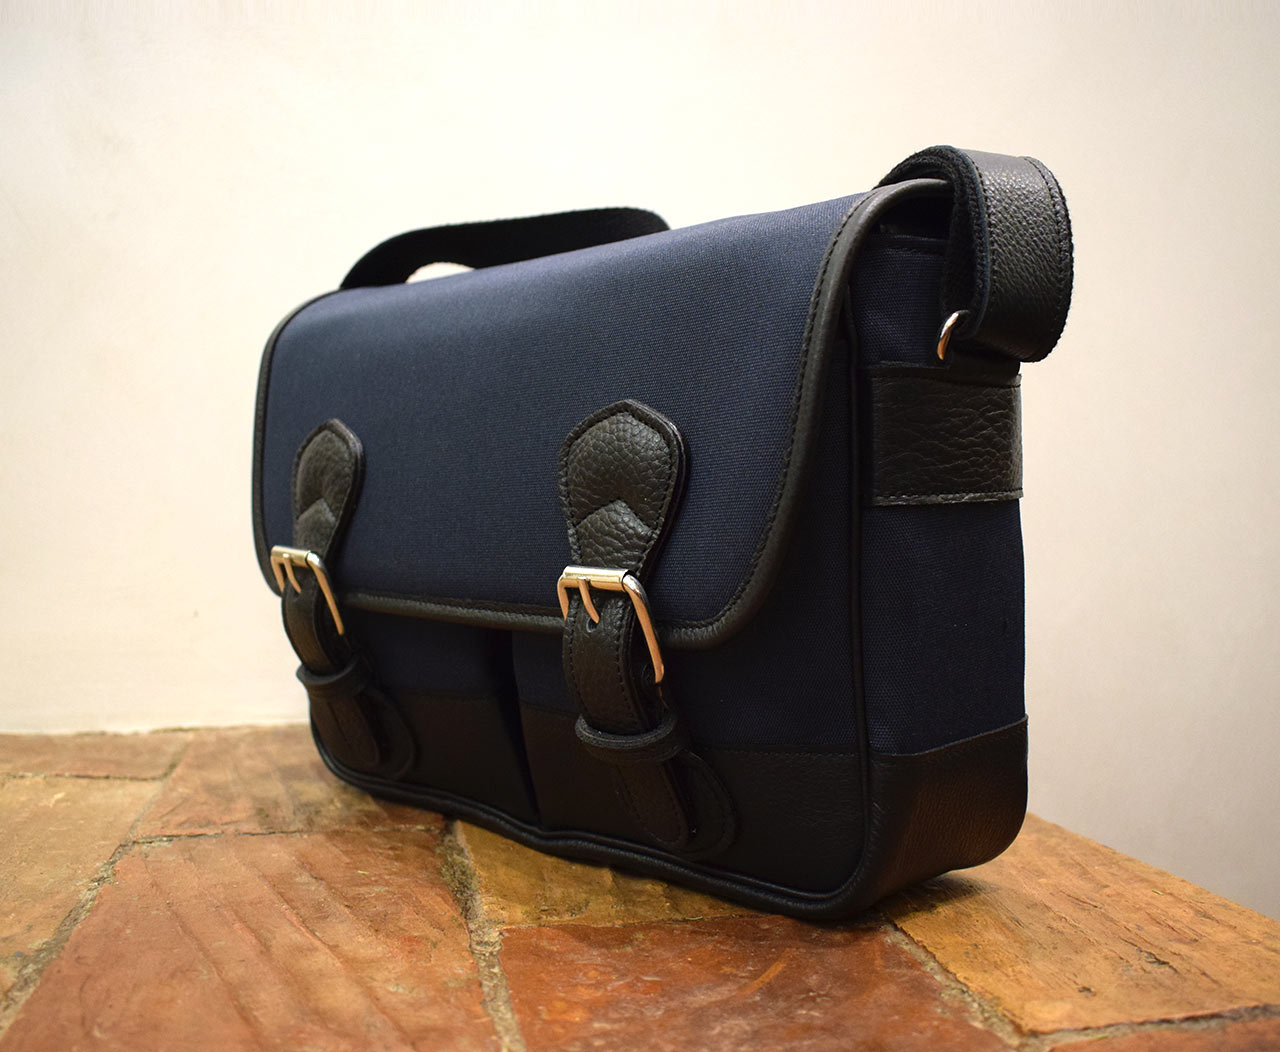 Fauna Junior, Italian handmade briefcase, waterproof canvas with leather trimmings - Mancini Leather Since 1918